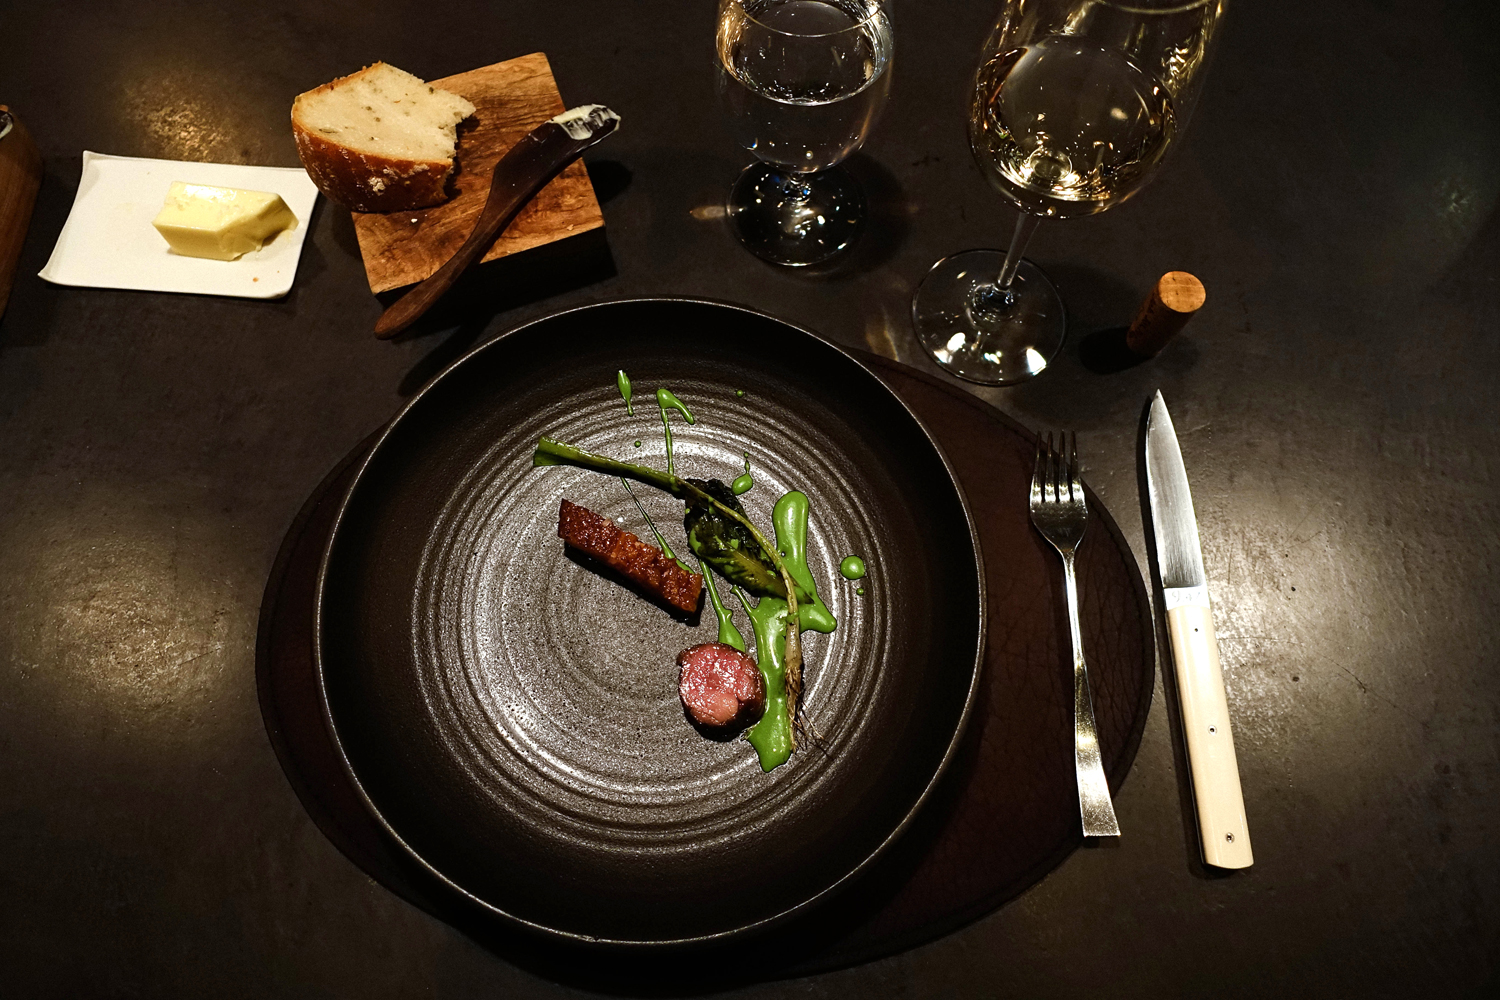 Roasted duck with green tea and Sucrine with cucurbita moschata